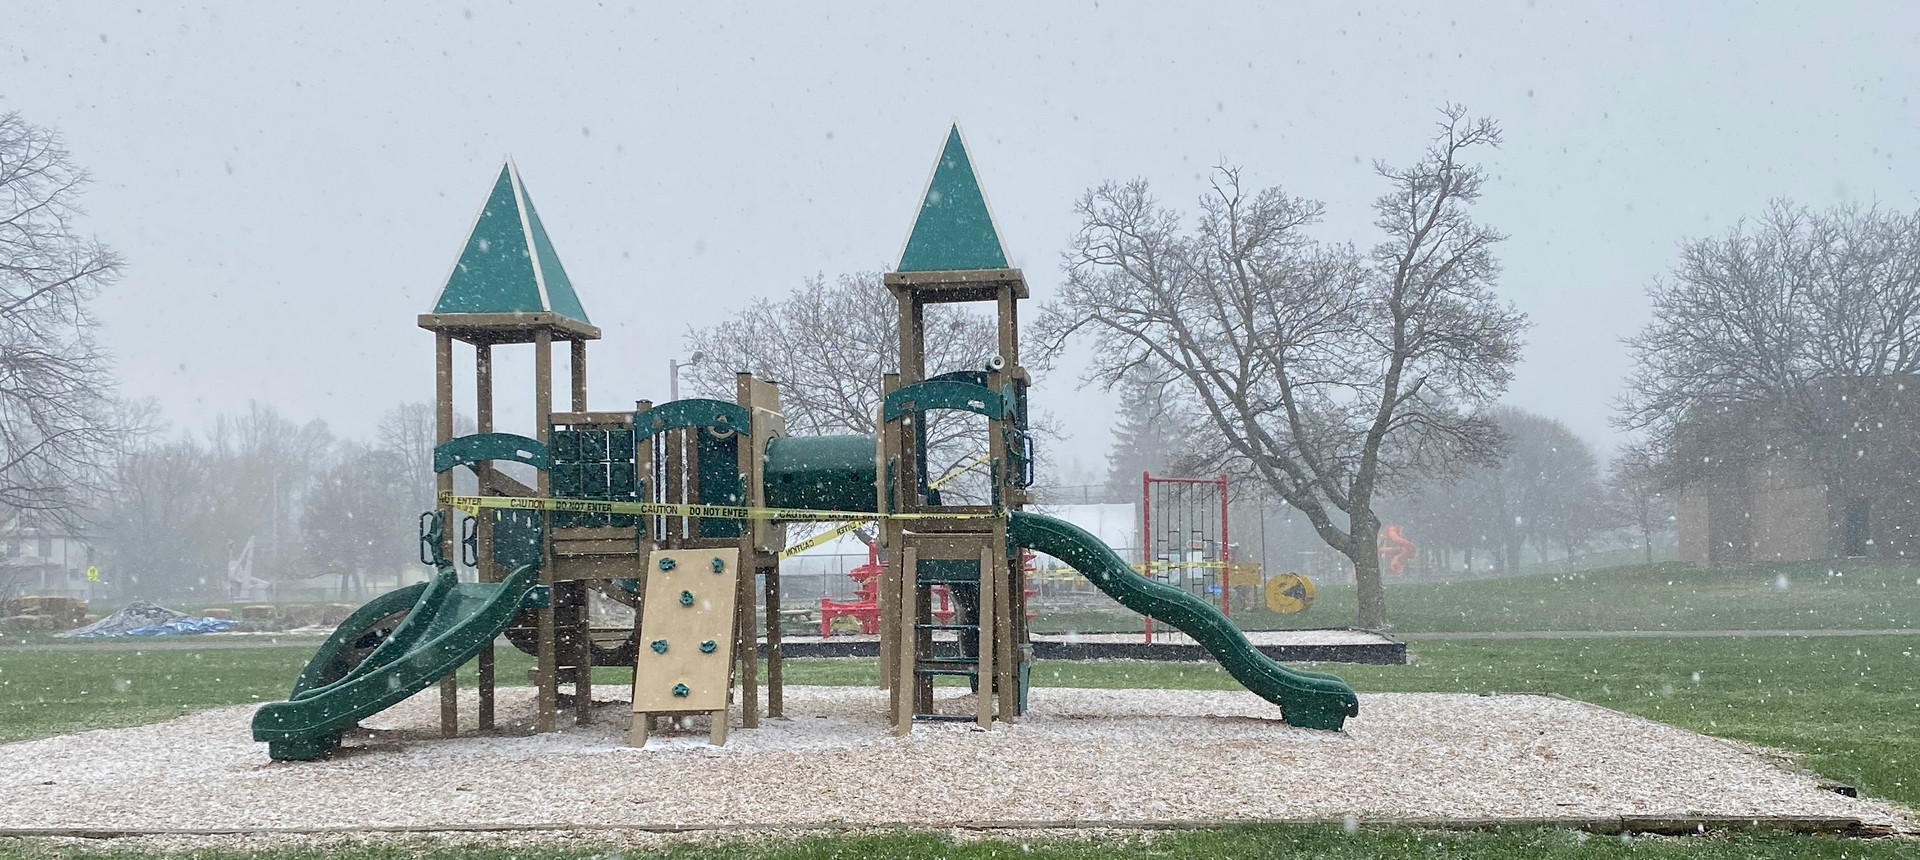 COVID-19 Clears Playgrounds